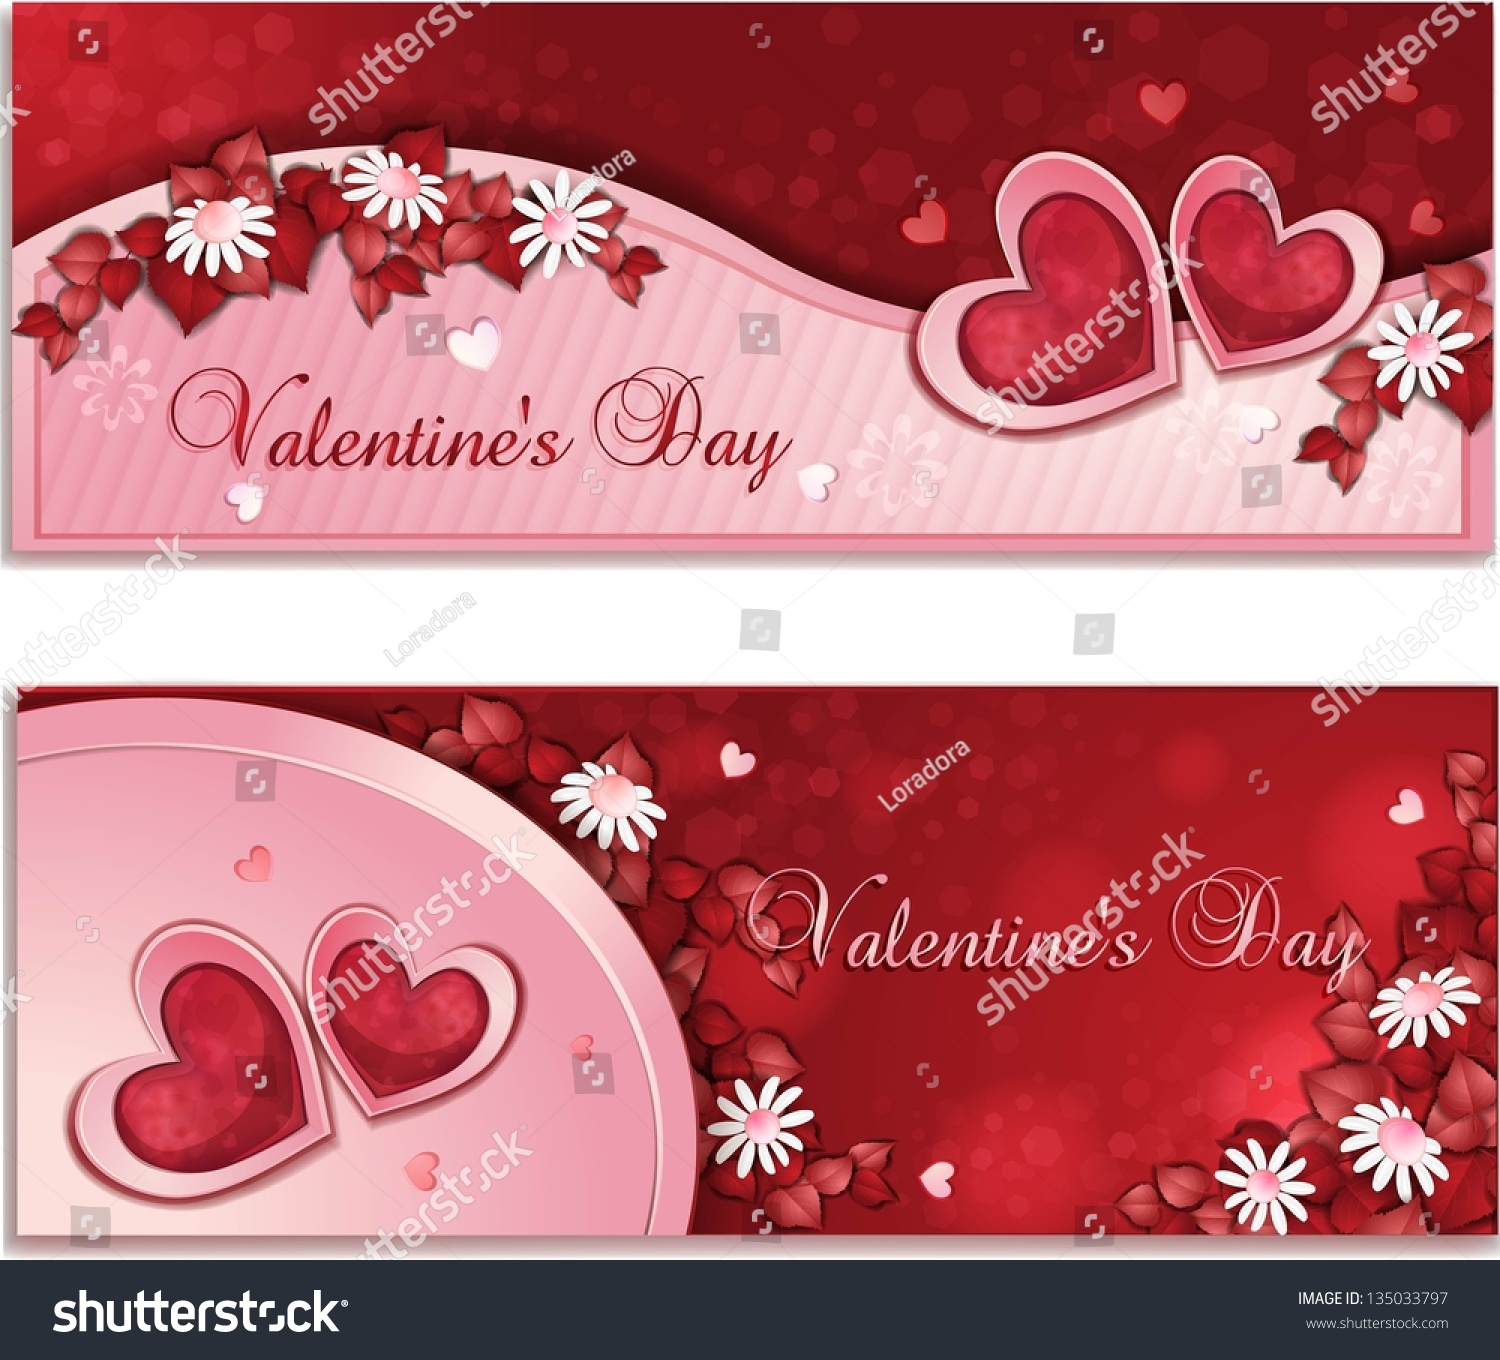 Beautiful Valentines Day Banners Flowers Stock Illustration